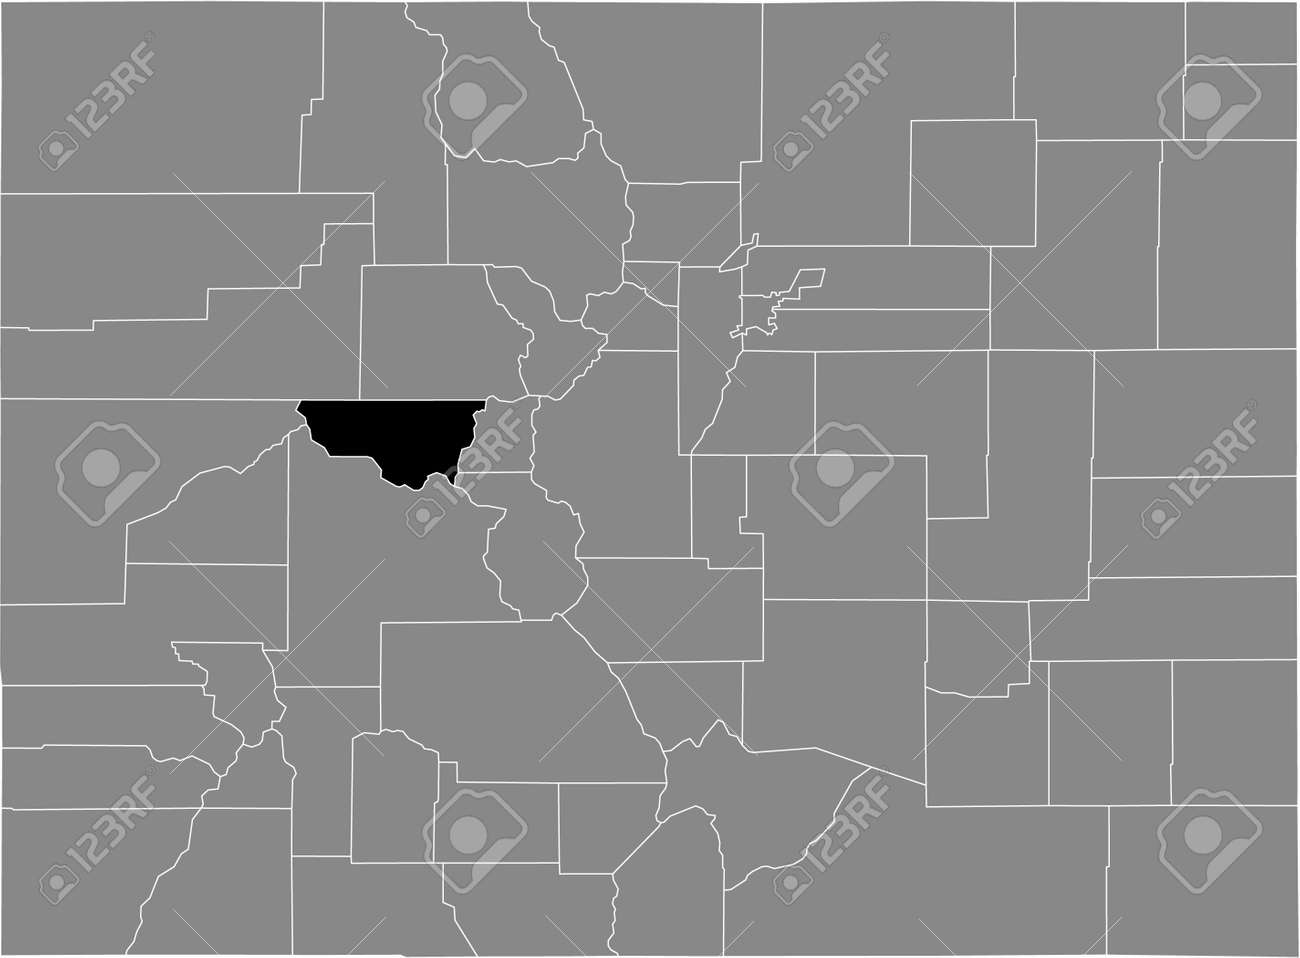 Black highlighted location map of the US Pitkin county inside gray map of the Federal State of Colorado, USA - 169913246